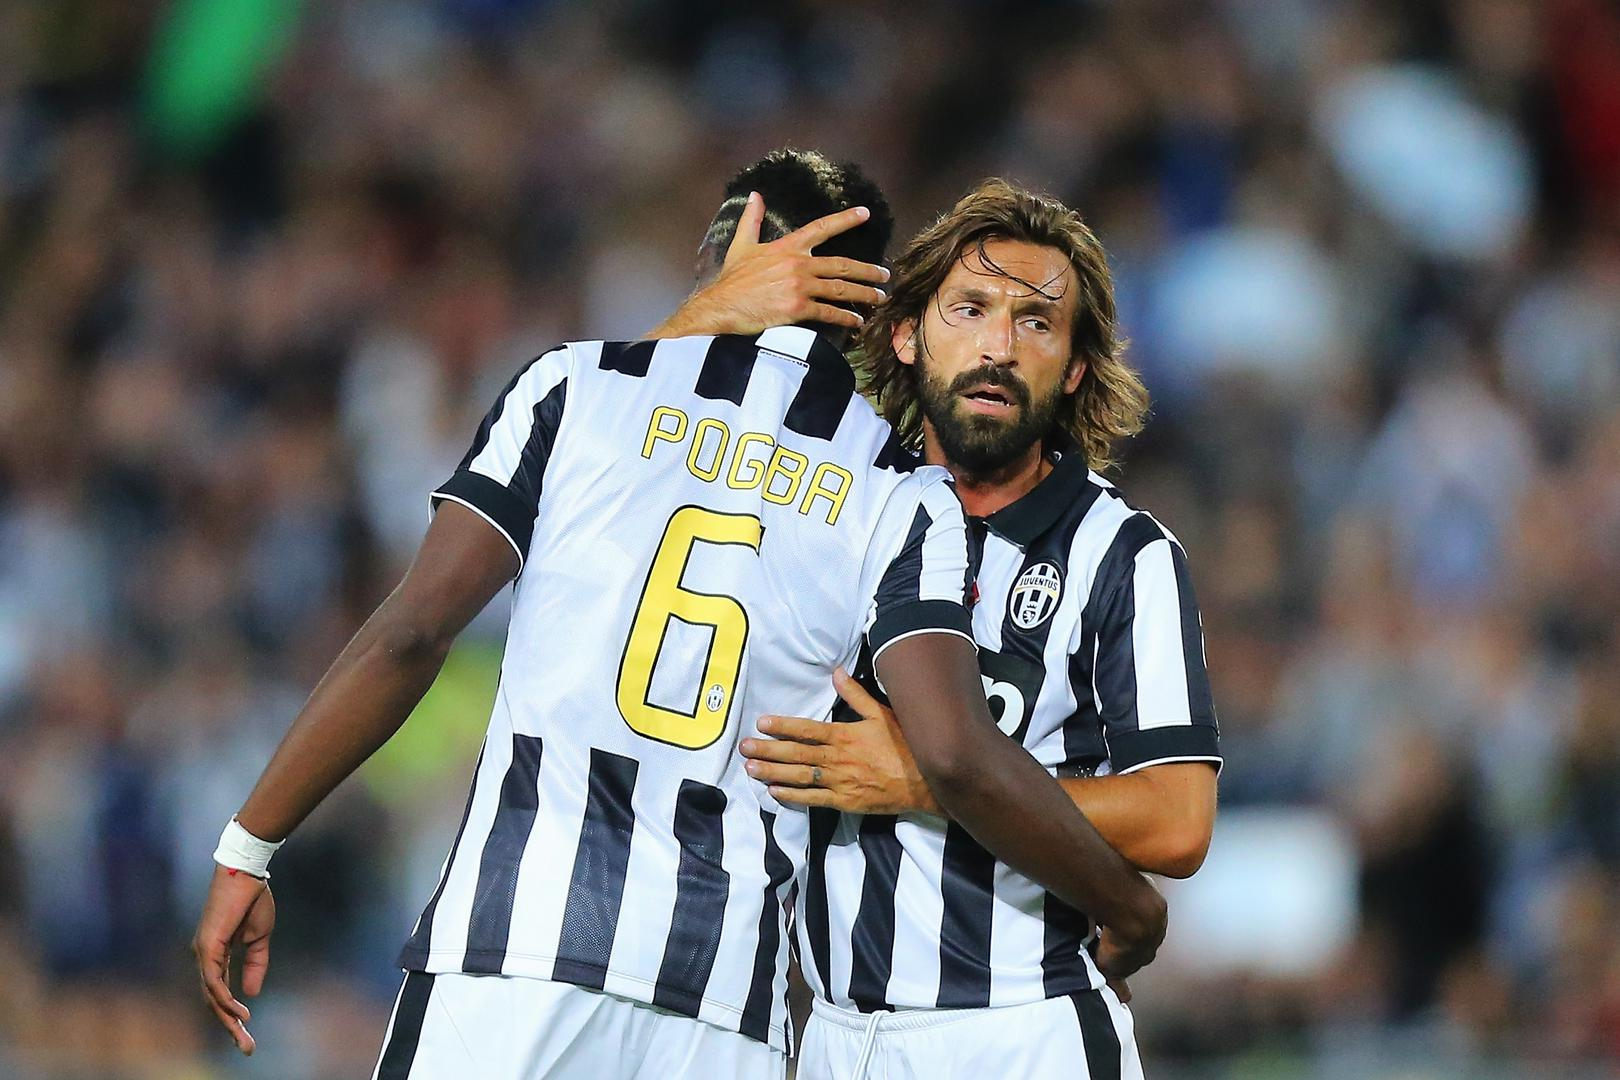 Paul Pogba is hugged by Andrea Pirlo.